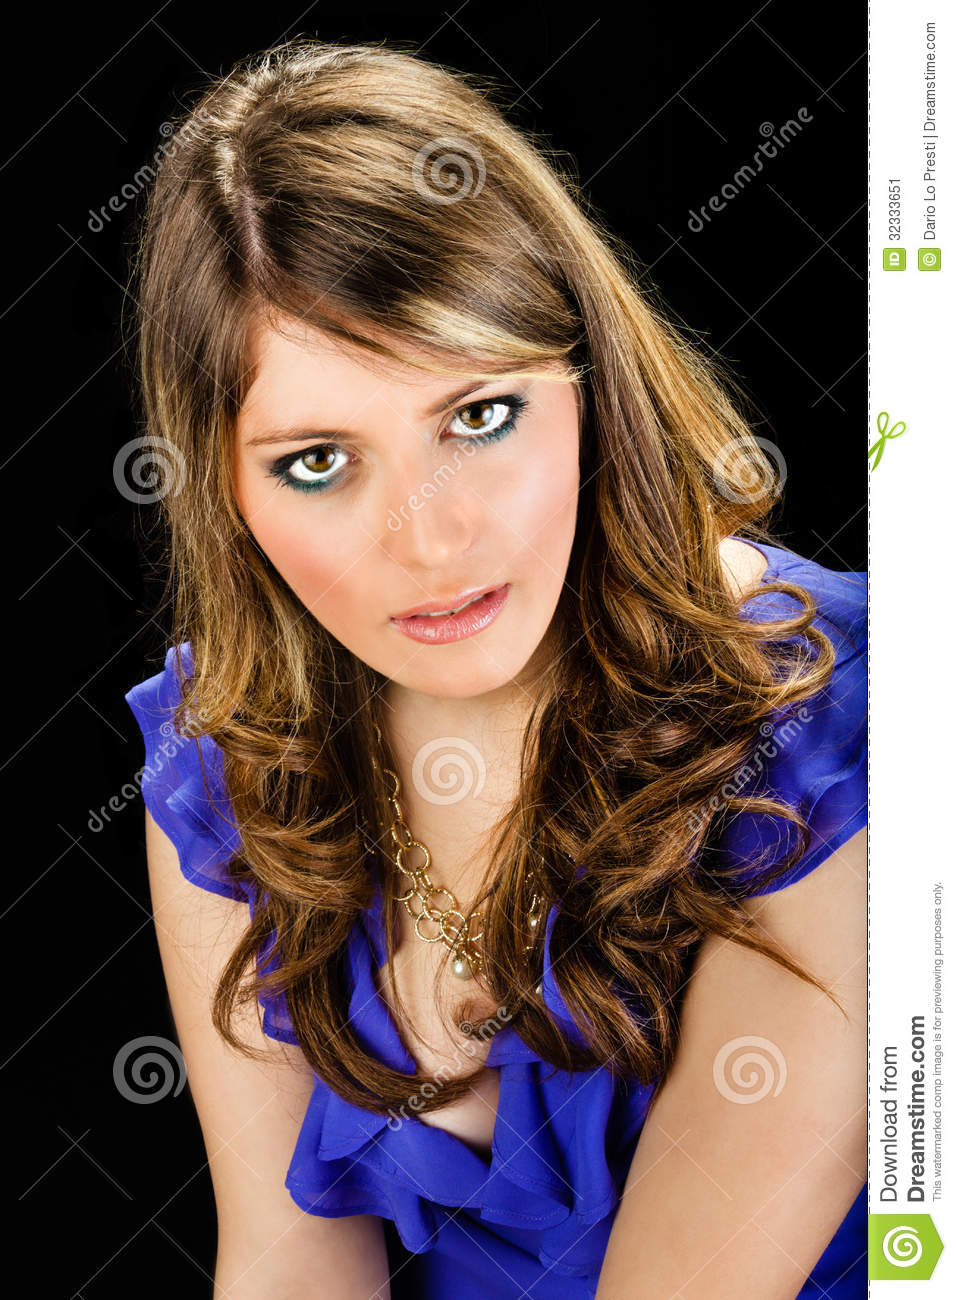 Very Beautiful Blond Teen Girl With: Sensual Lady Stock Image